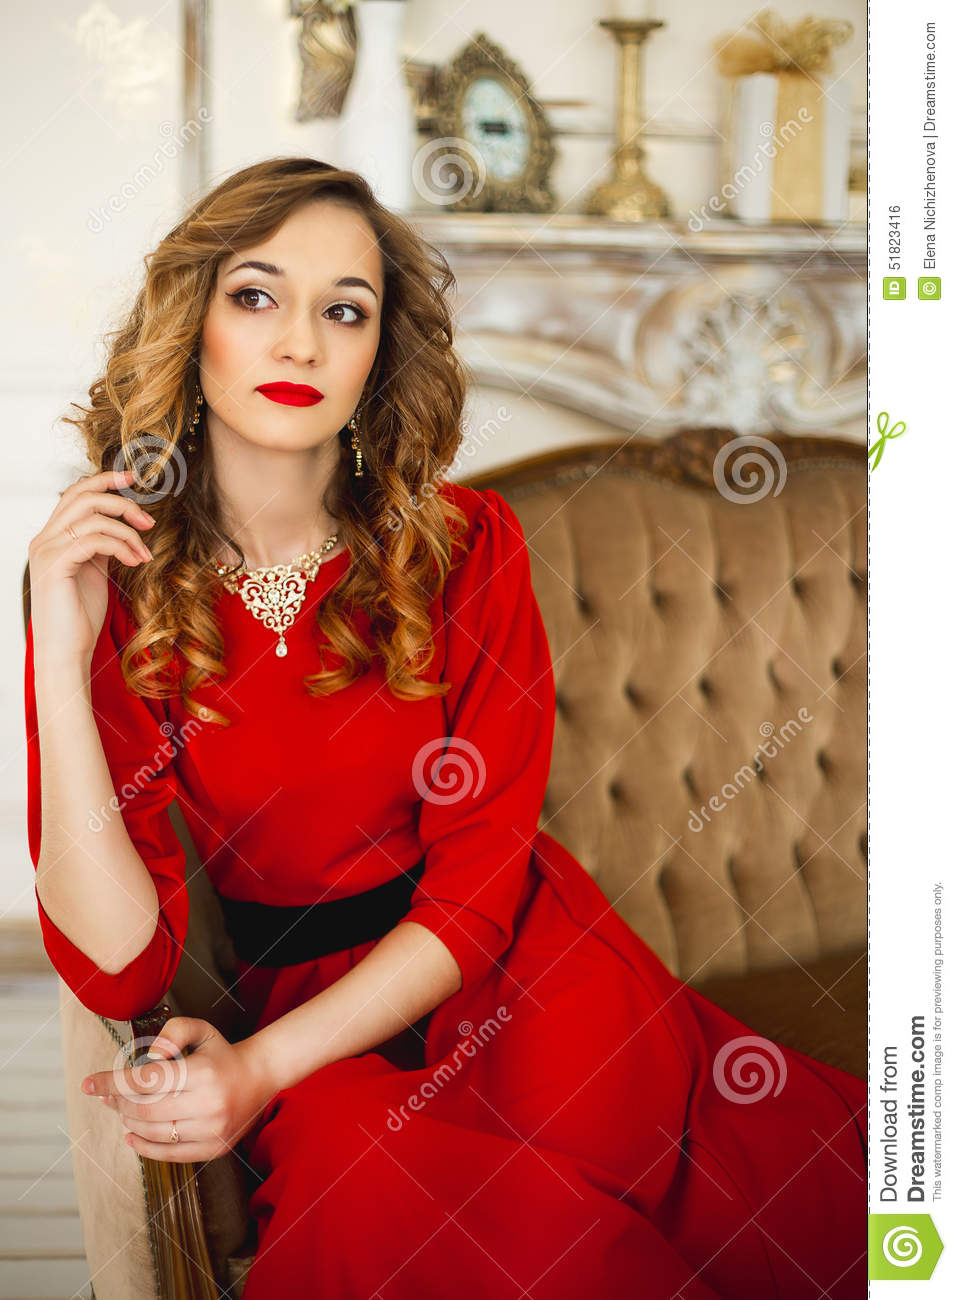 The girl in a red dress with gold costume jewelry stock for Red with gold